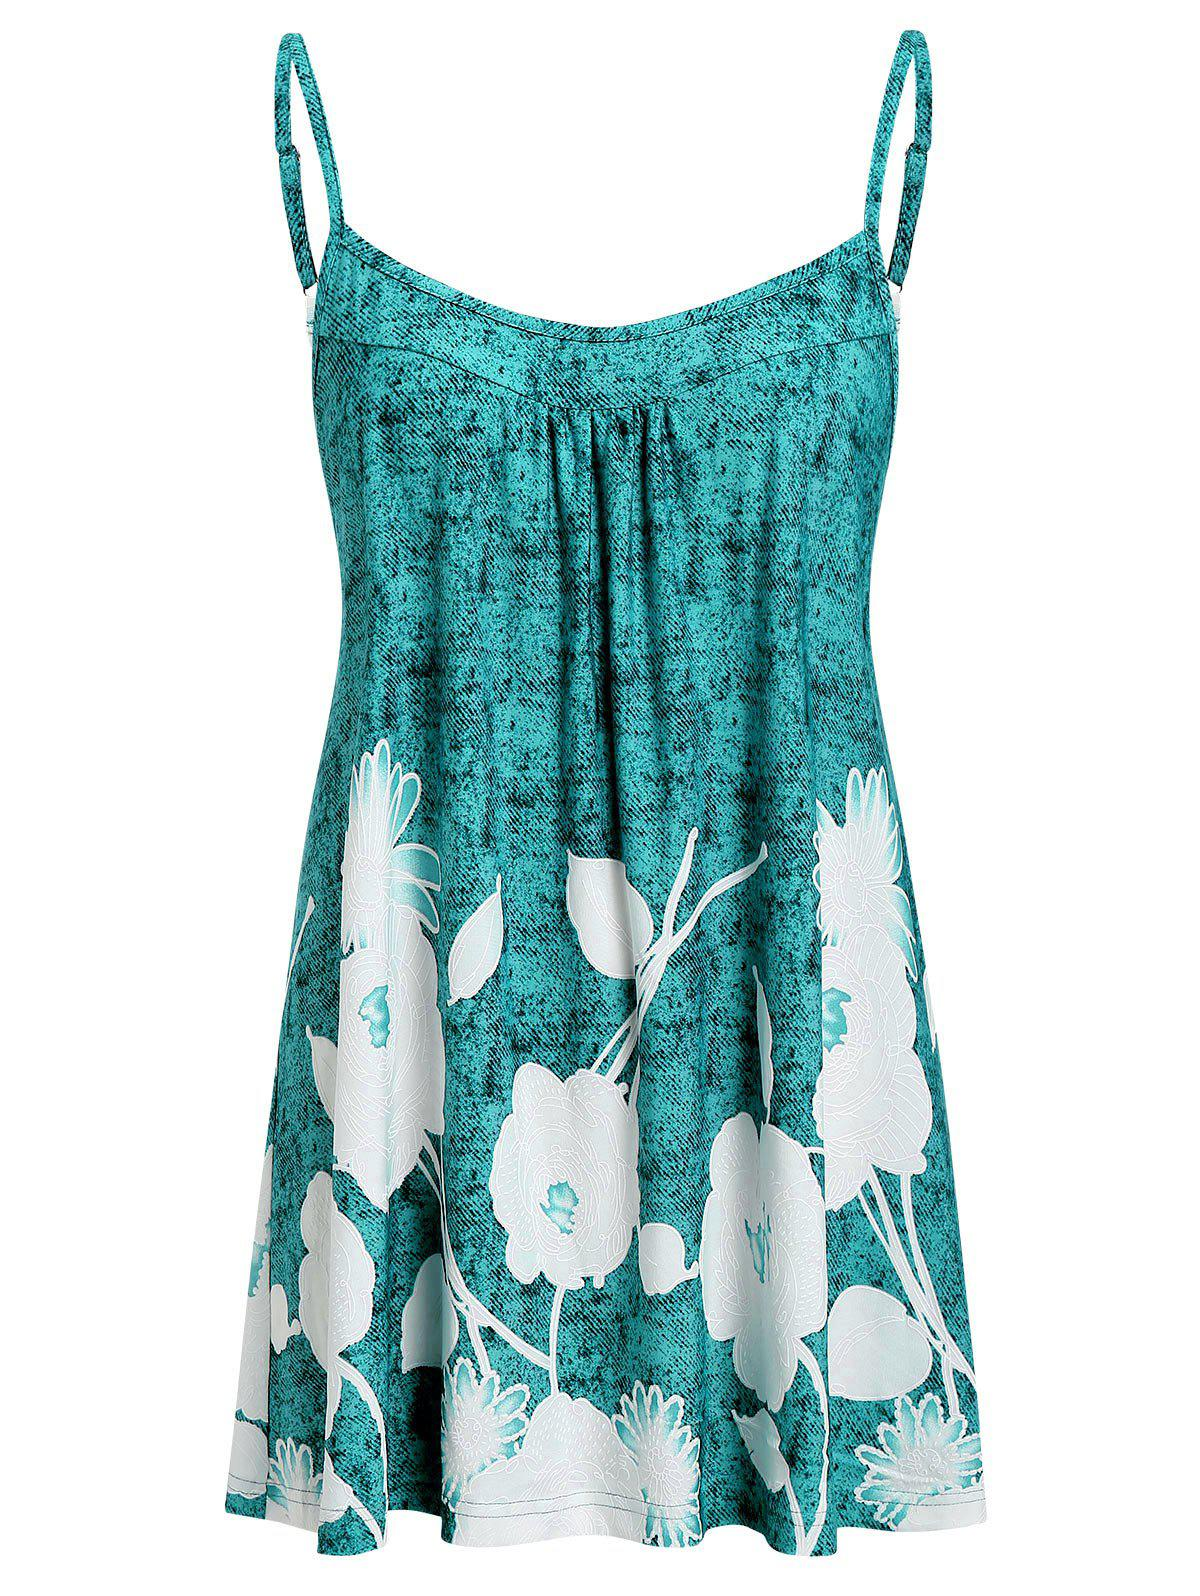 Plus Size Printed Flare Cami Tank Top - MEDIUM TURQUOISE 4X